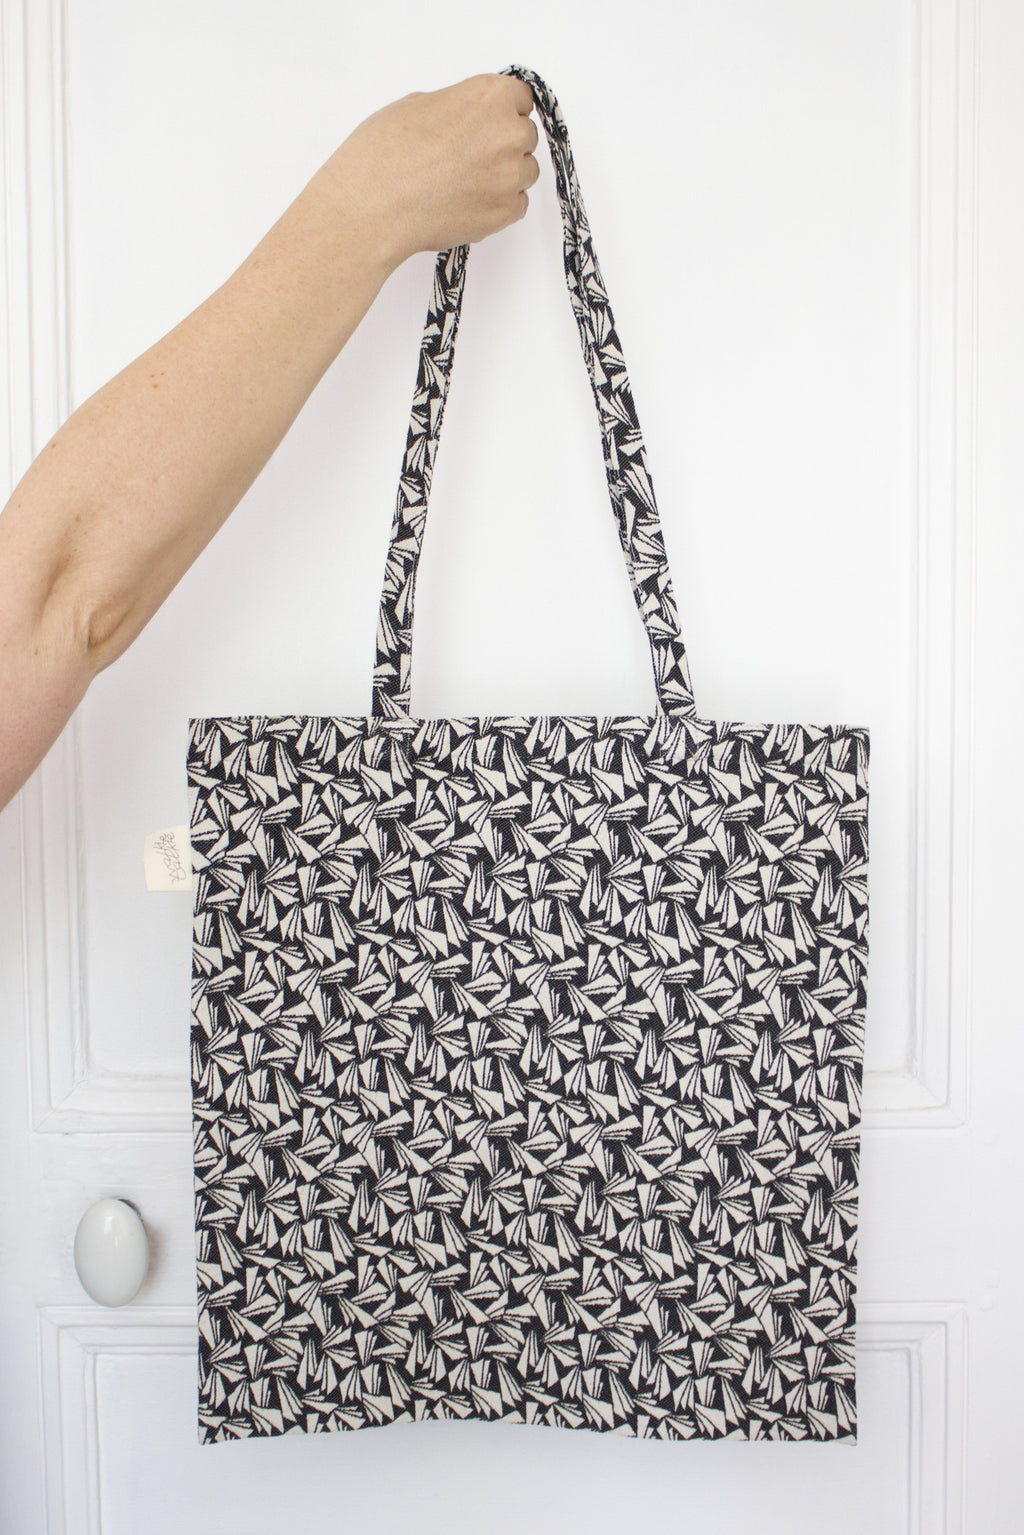 tote bag Jacquard origami Studio Walkie Talkie